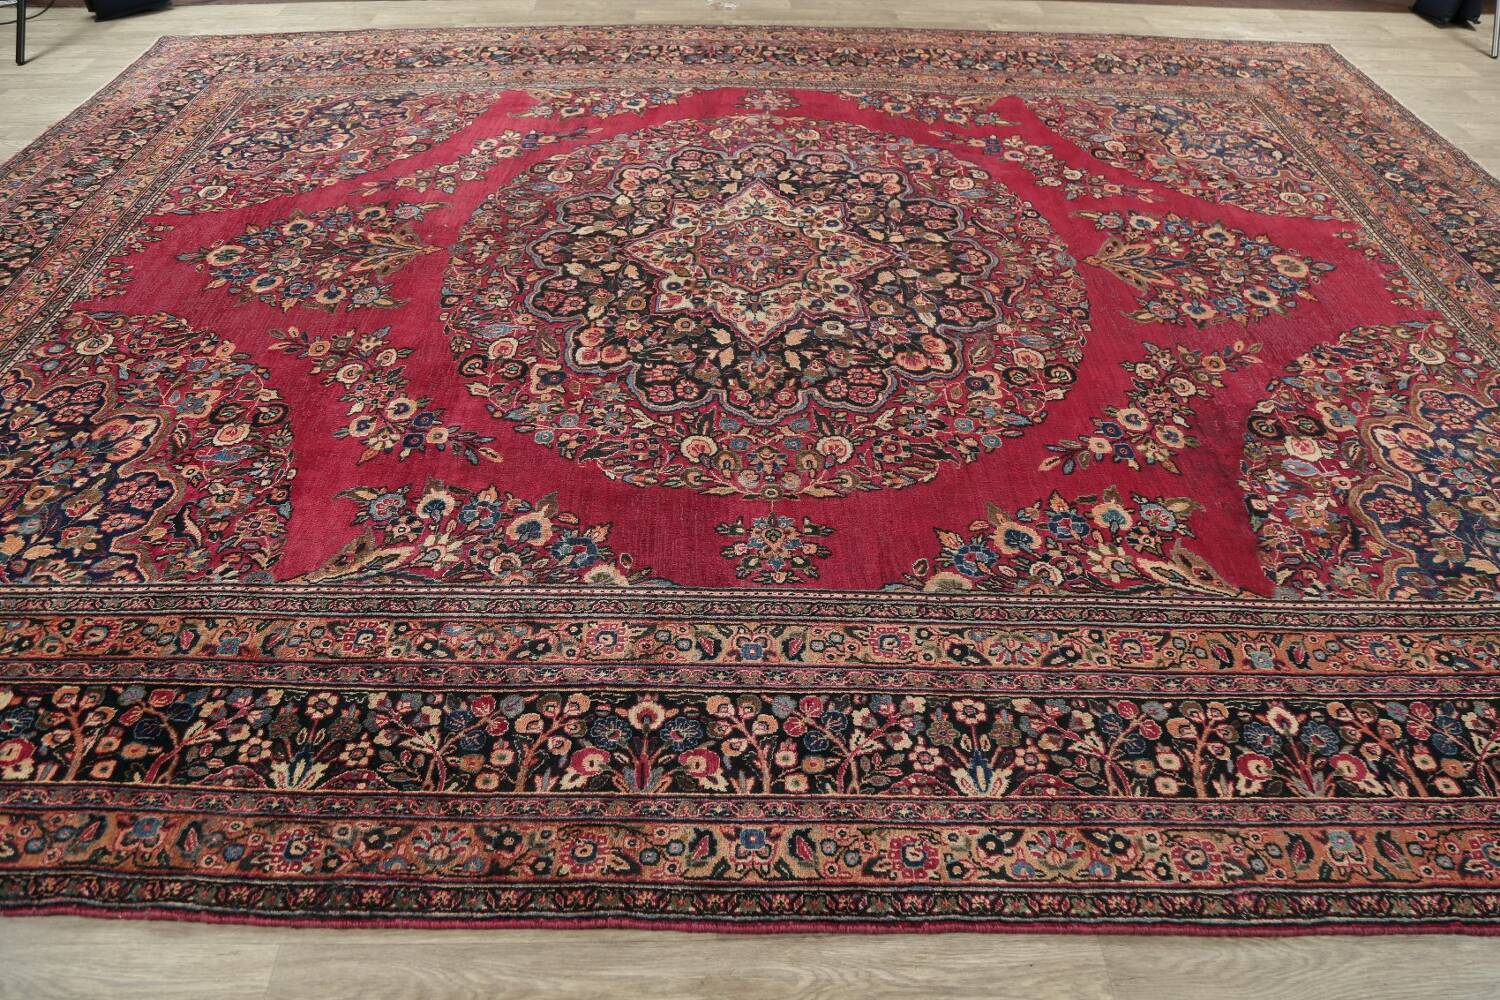 Antique Floral Red Dorokhsh Persian Rug Large 11x14 image 18